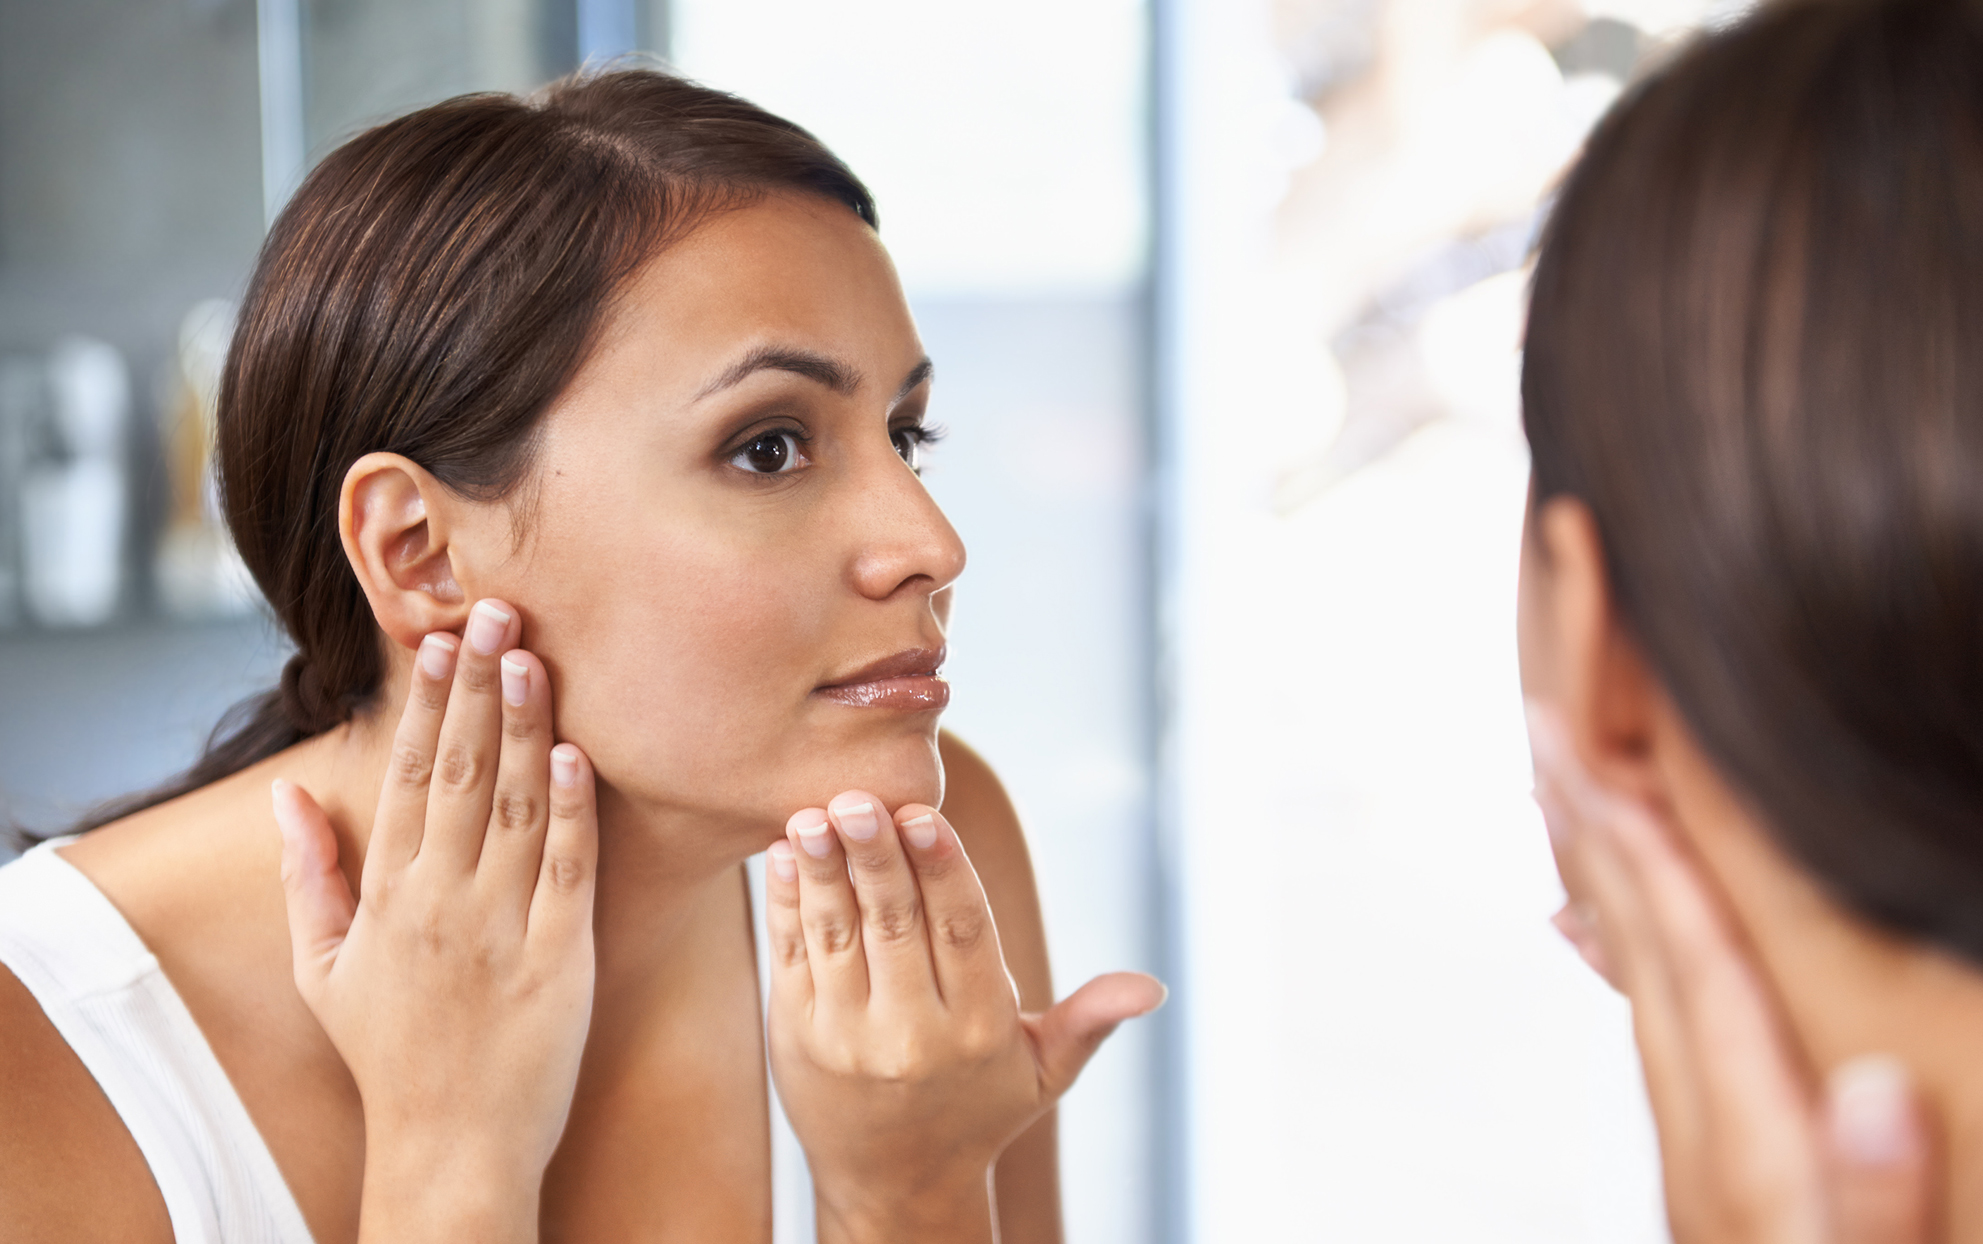 Ethnic woman looking at herself in the mirror